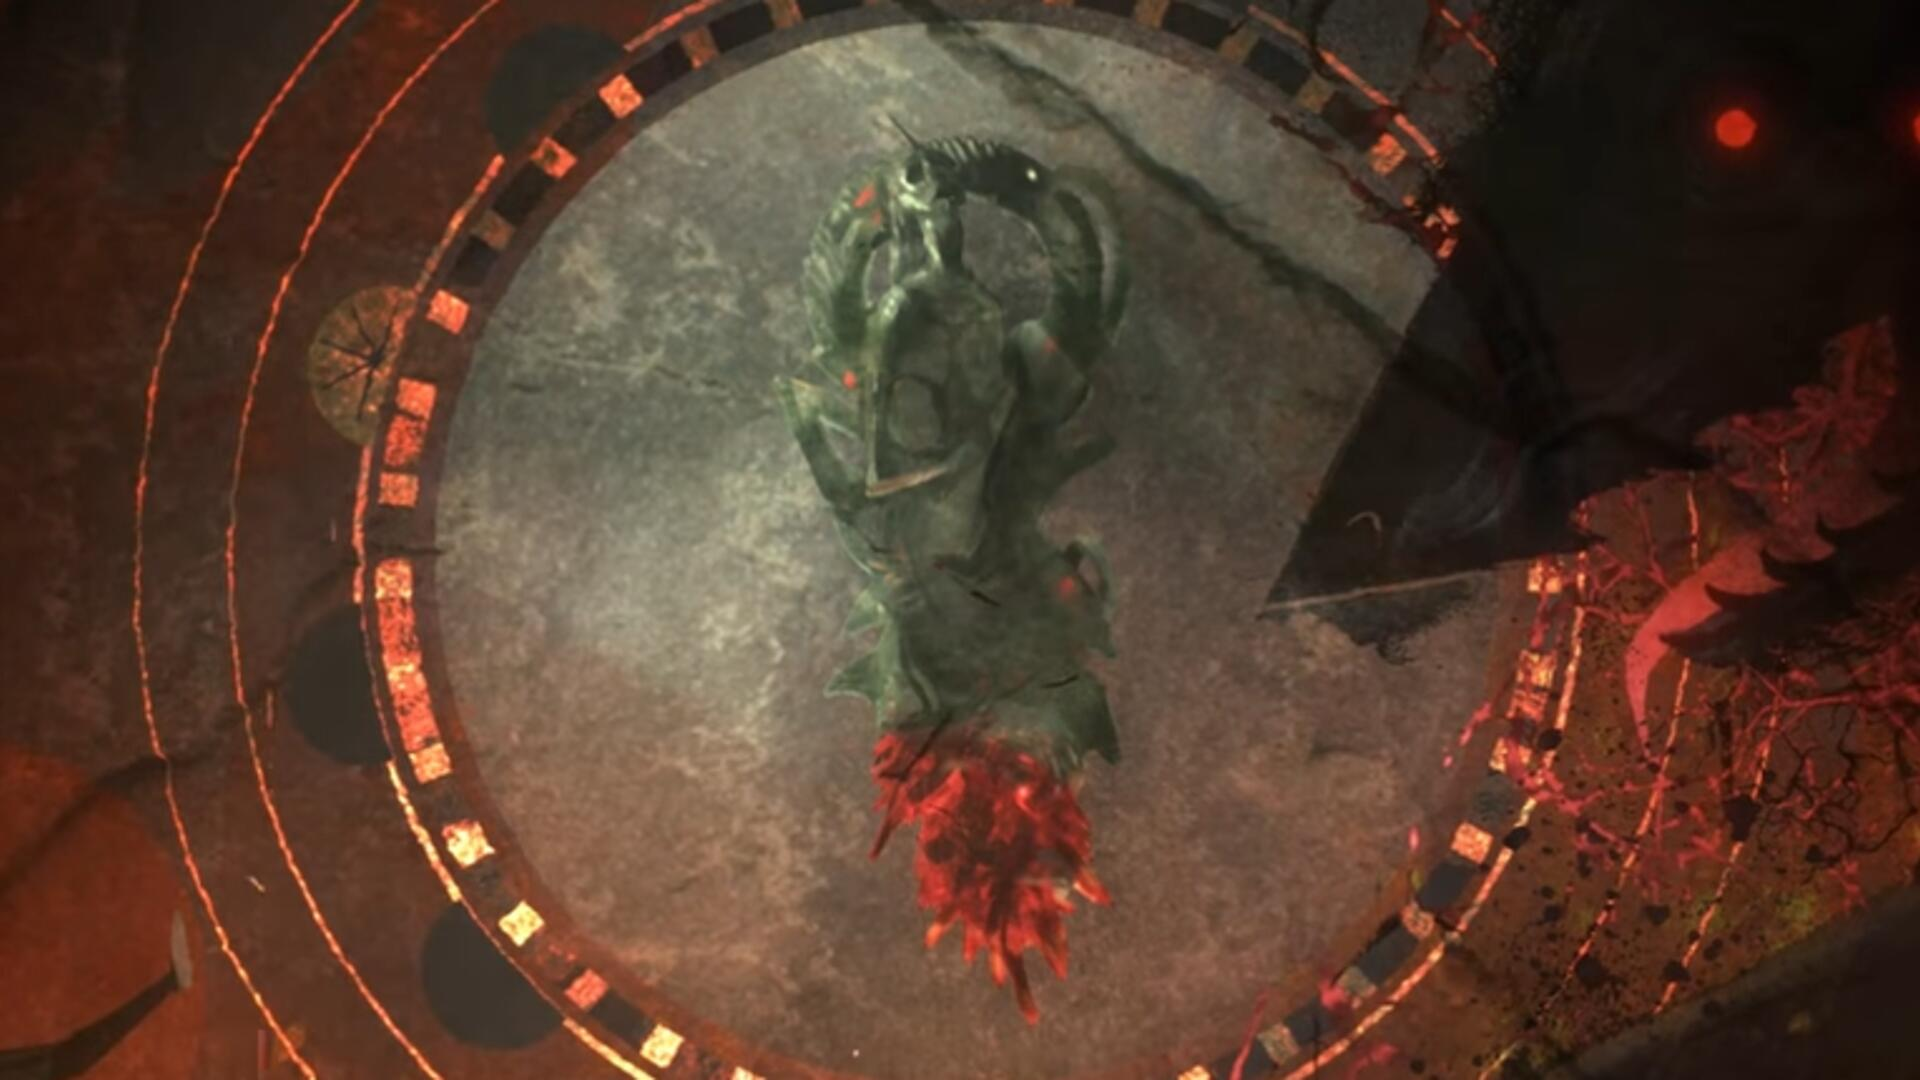 BioWare Announces a New Dragon Age Game With a Cryptic Trailer and Hashtag